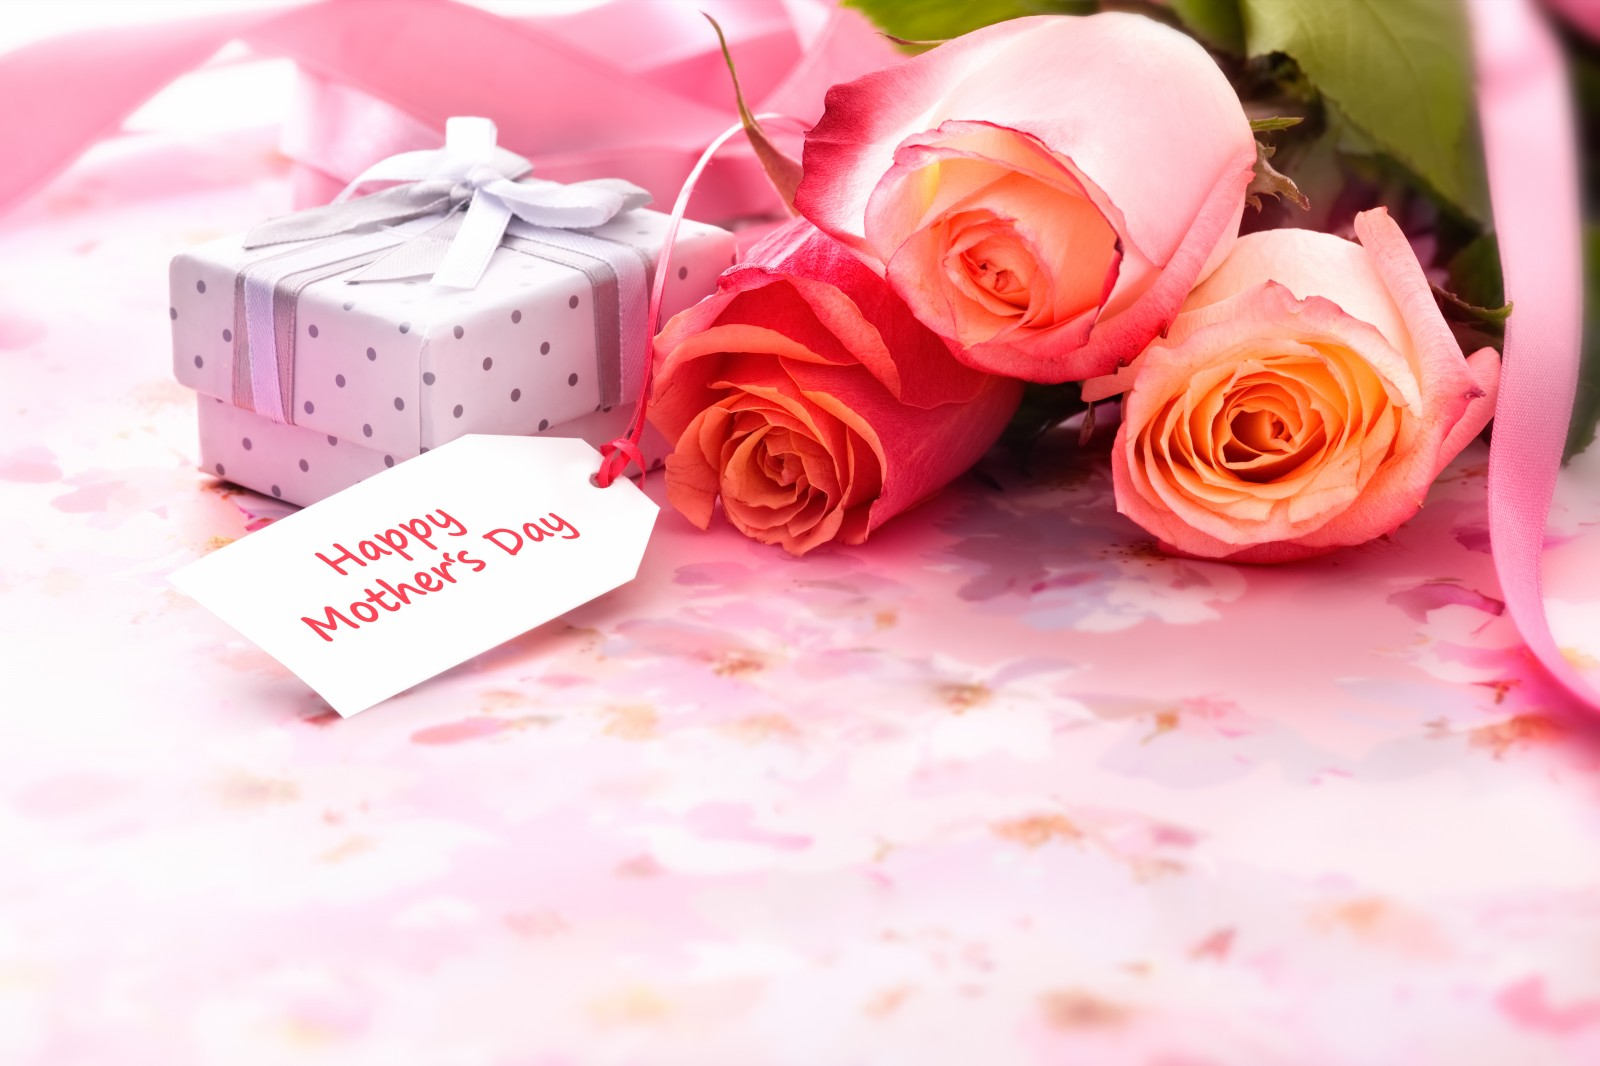 Happy-Mothers-Day-Card-24.jpg